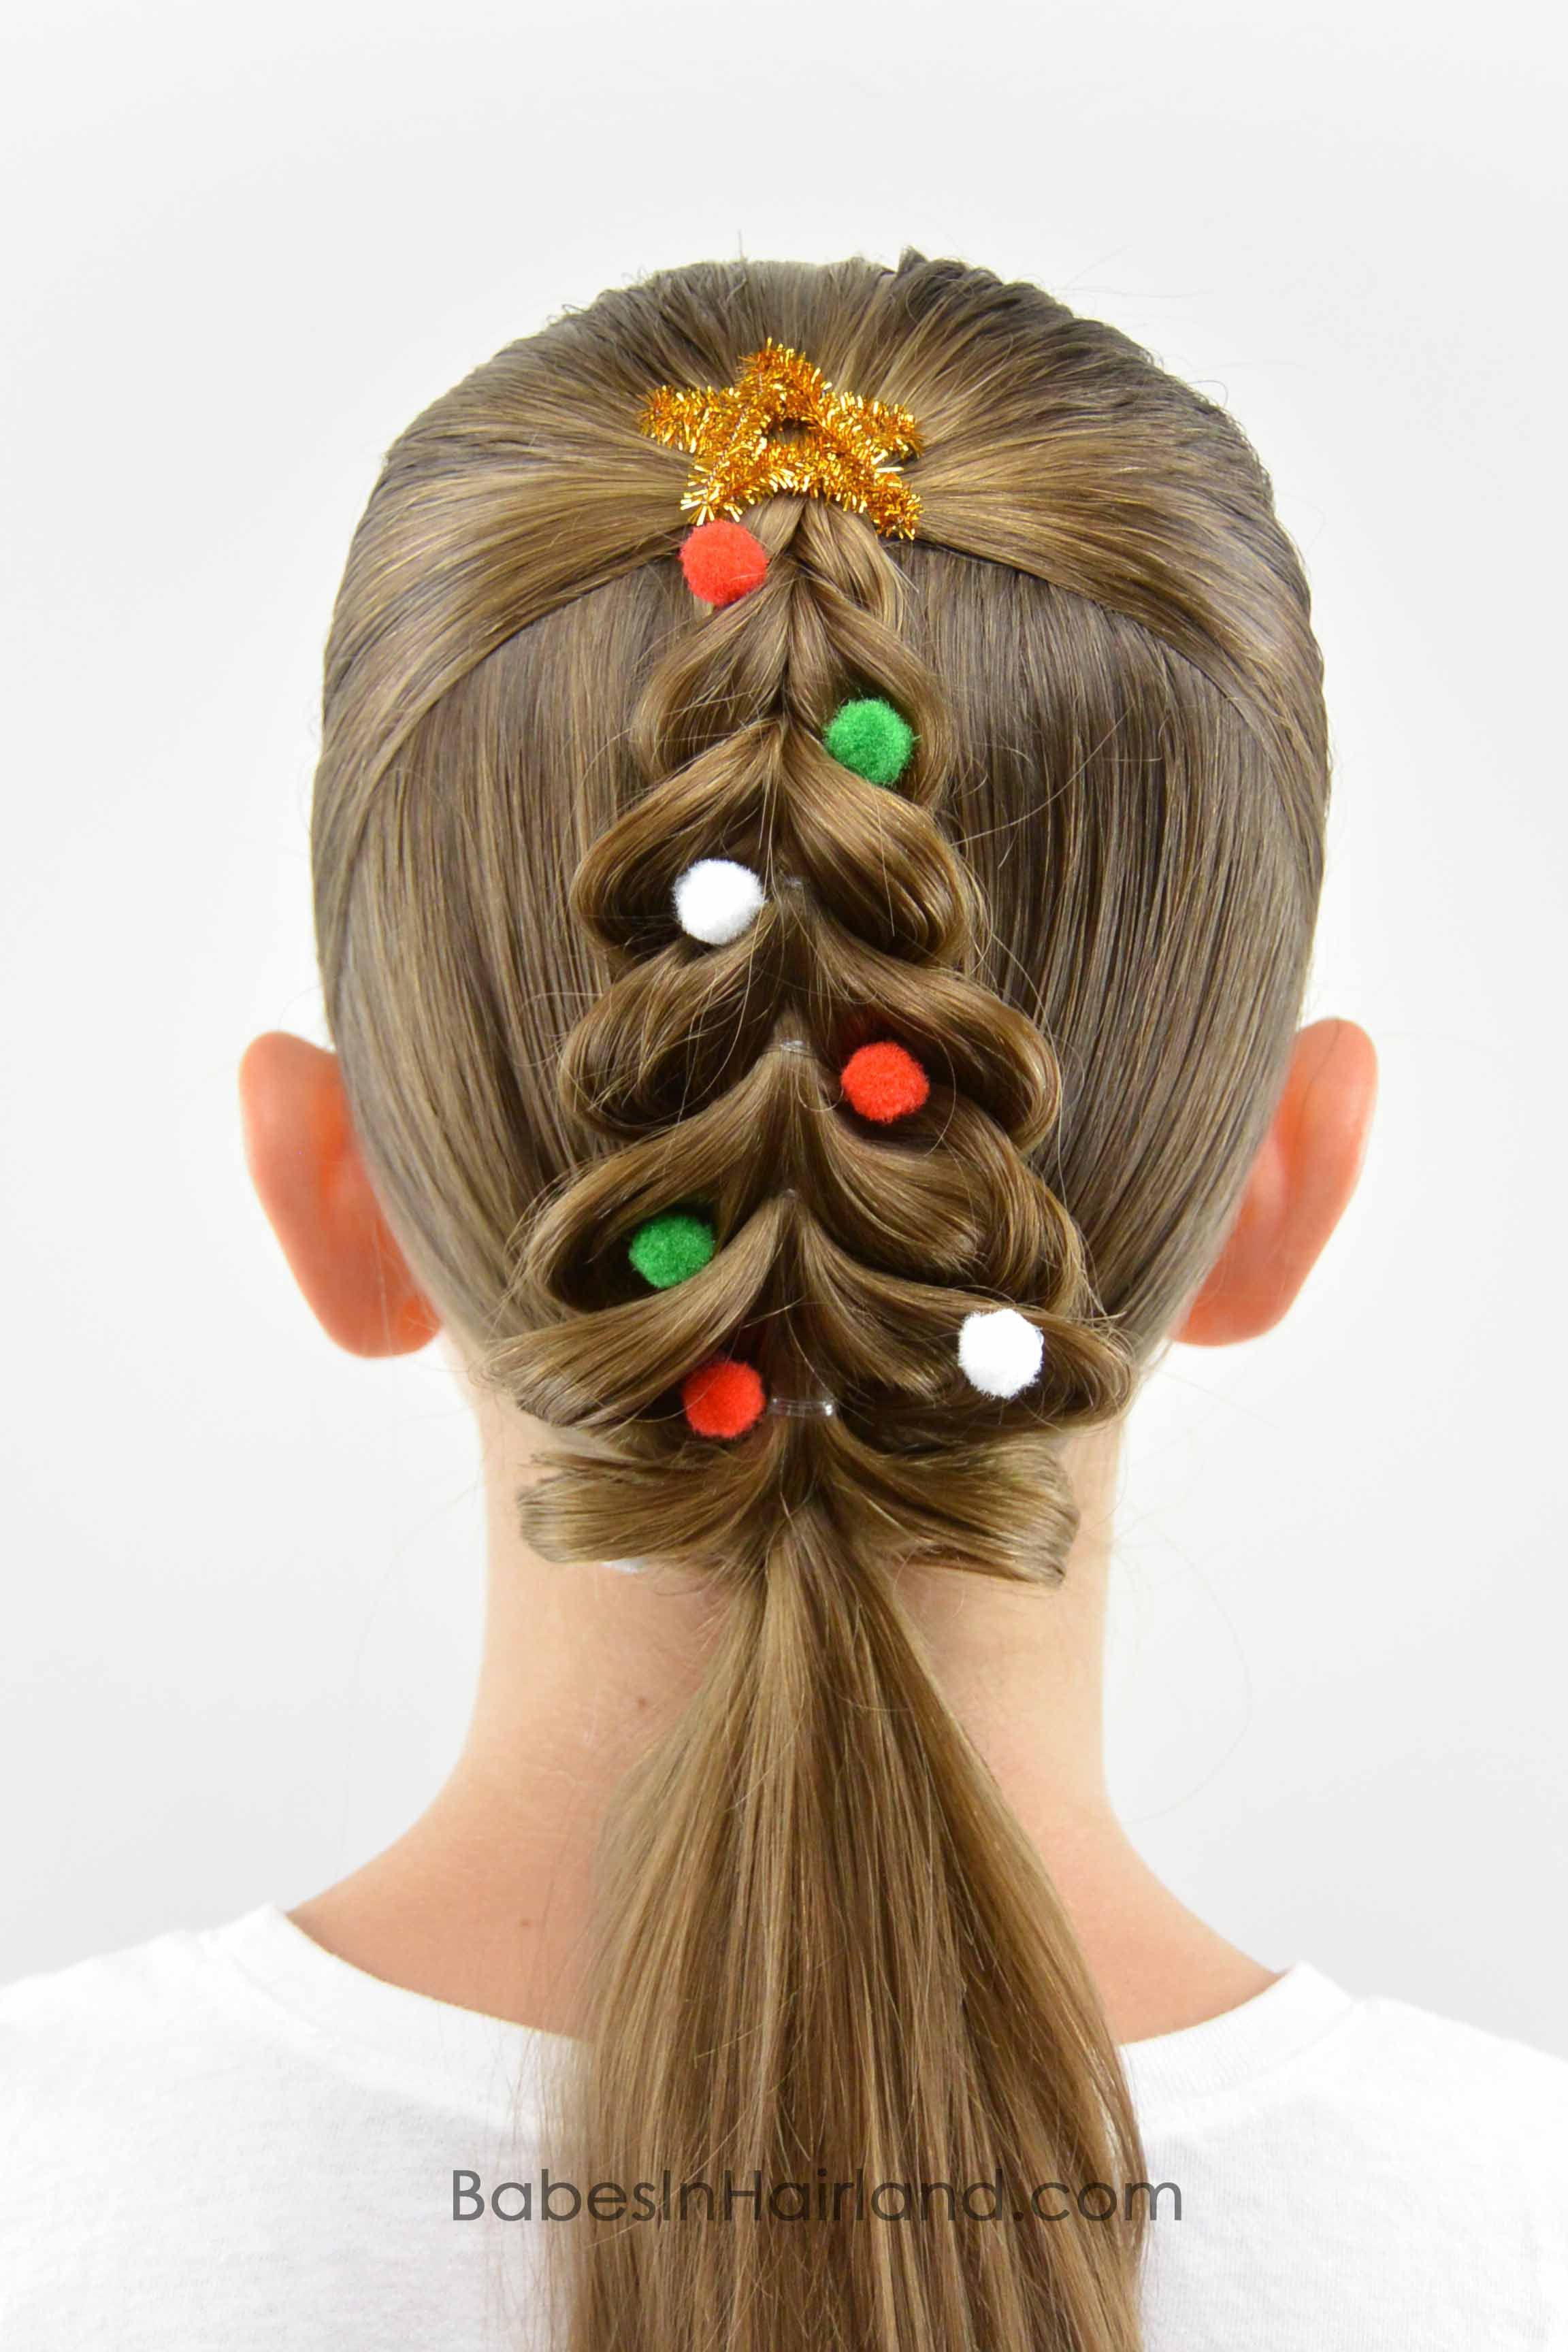 Christmas Hairstyles For Kids.Christmas Tree Pull Through Braid Braided Hairstyles Kids